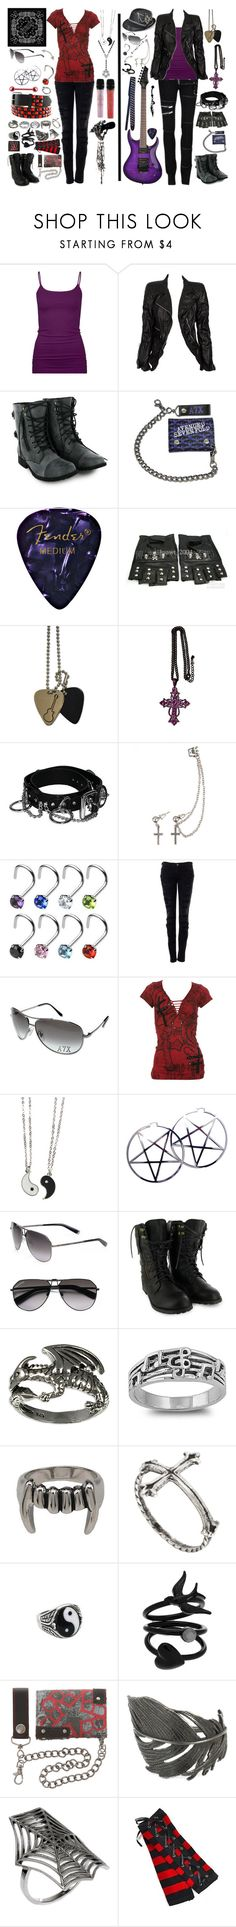 """""""At the rock show, you'll be right in the front row. Heart and soul, they both know. It's where you gotta be."""" by rukiakuchiki12341 ❤ liked on Polyvore featuring Naoto, Full Tilt, Marc Jacobs, CO, Swarovski, Club Manhattan, Current/Elliott, Affliction, Kill Star and Dsquared2"""